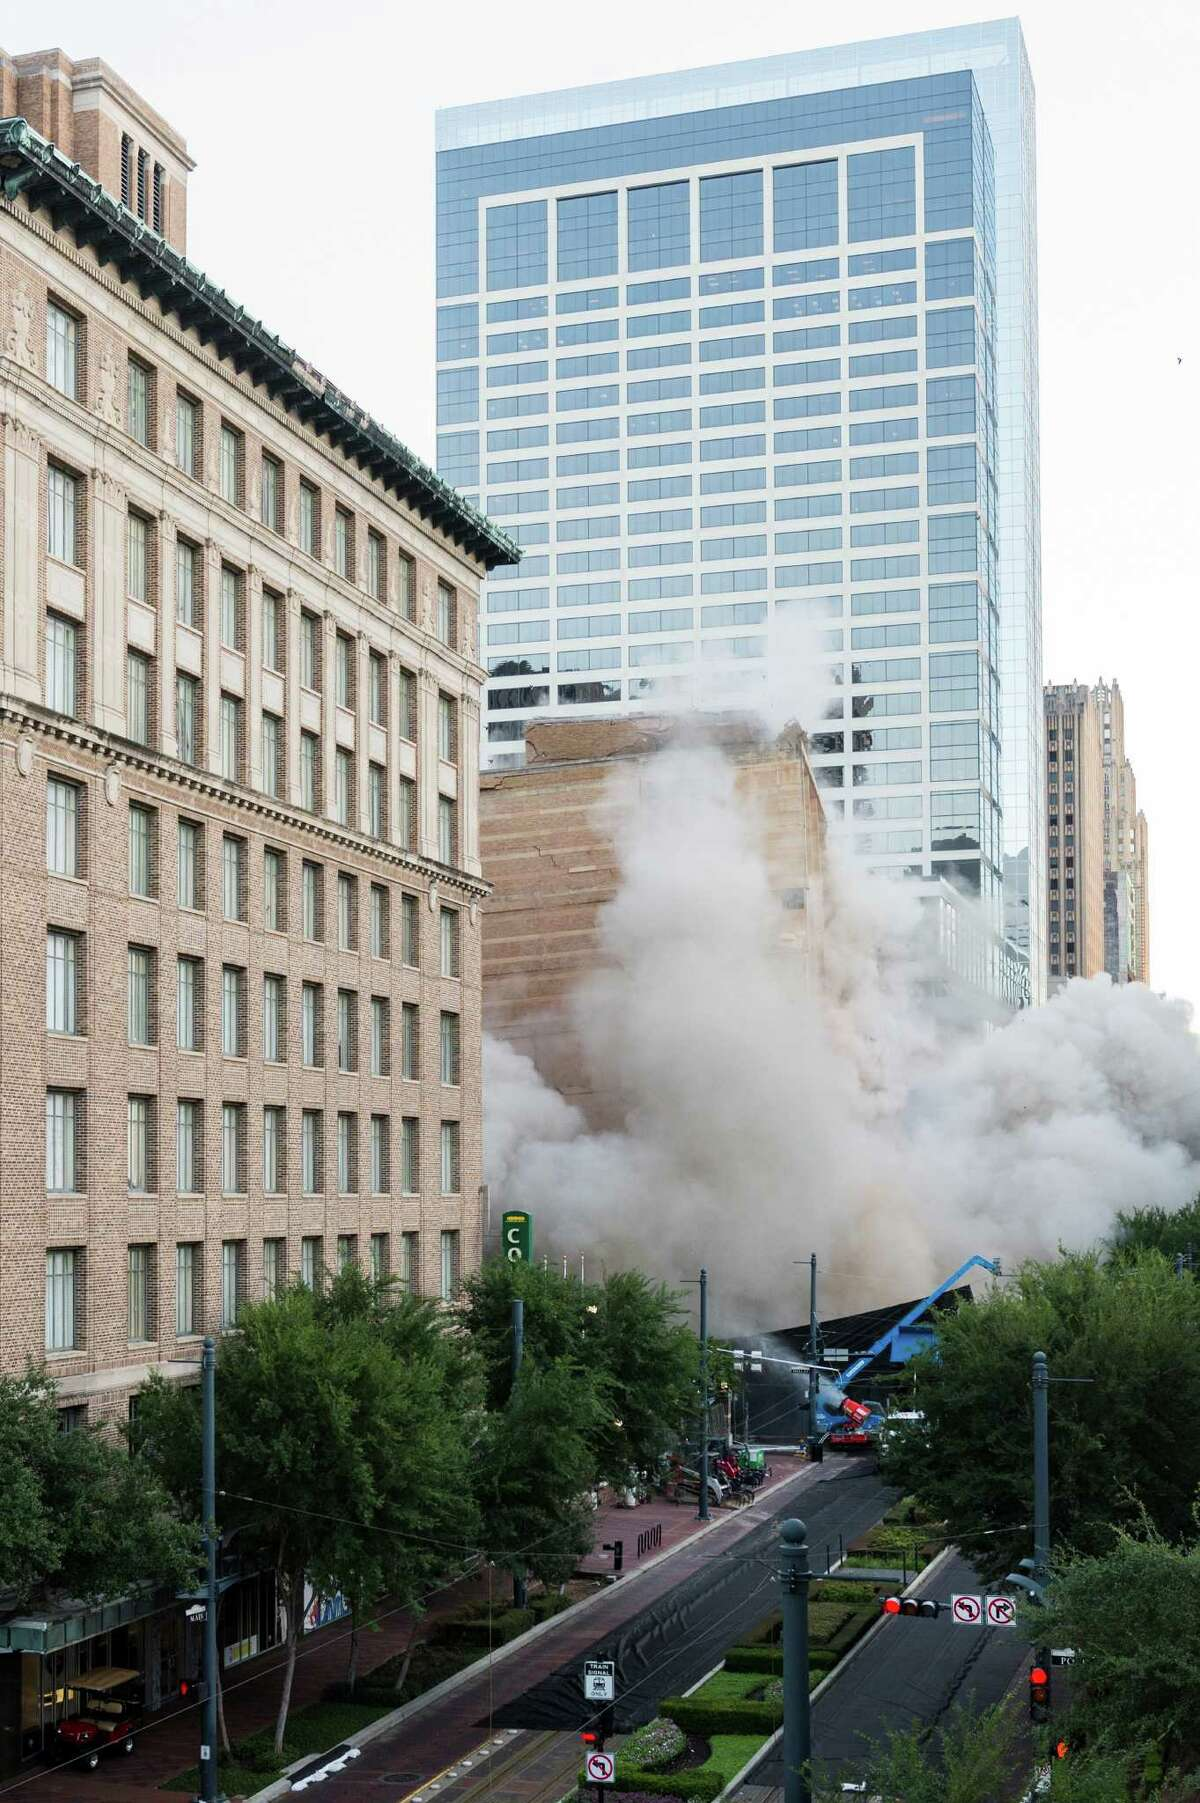 A series of explosive charges brings down the landmark former Macy's department store building in downtown Houston on Sunday, Sept. 22, 2013. Many Houstonians remember the store as Foley's, a homegrown retail chain that started downtown in 1900. As the store grew, it relocated and eventually moved into the building at 1110 Main in 1947. It was converted to Macy's in 2006 and operated at the site until closing in March. The 10-story, 791,000-square-foot building was reduced to rubble just after sunrise to make way for a still undisclosed new development. ( Smiley N. Pool / Houston Chronicle )